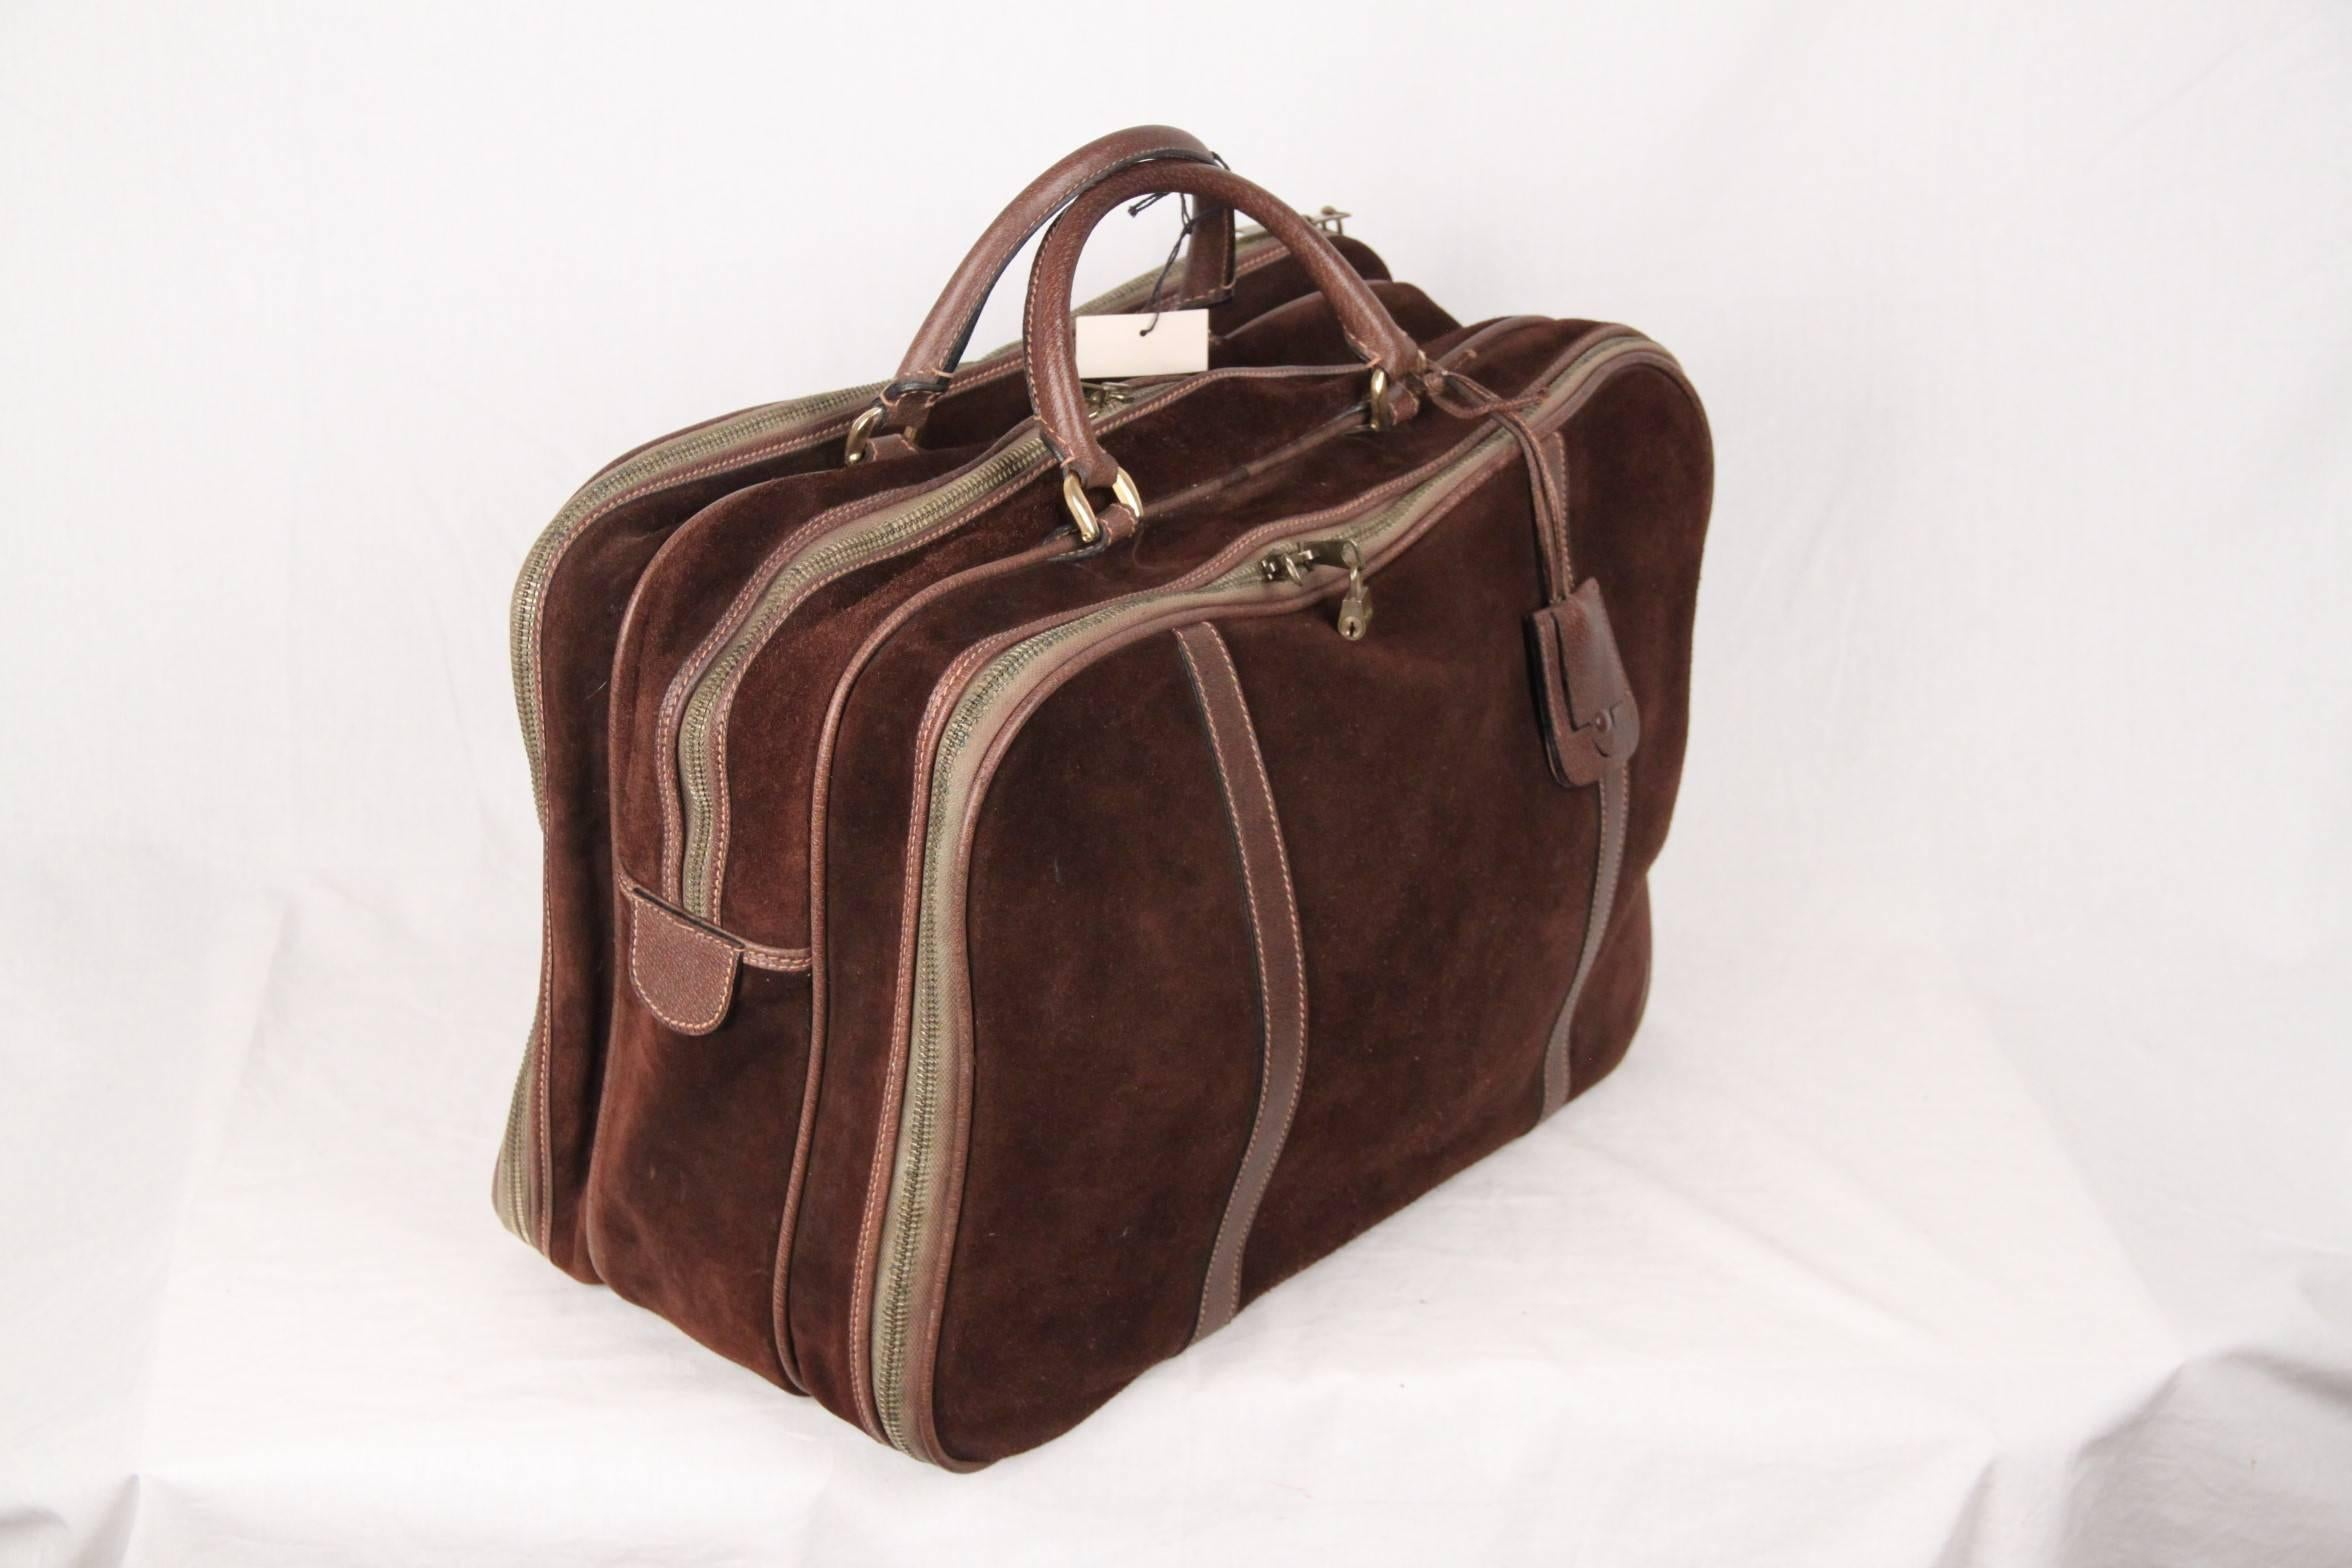 4b6d37d06e9 GUCCI Vintage Brown Suede CABIN SIZE SUITCASE Travel Bag at 1stdibs